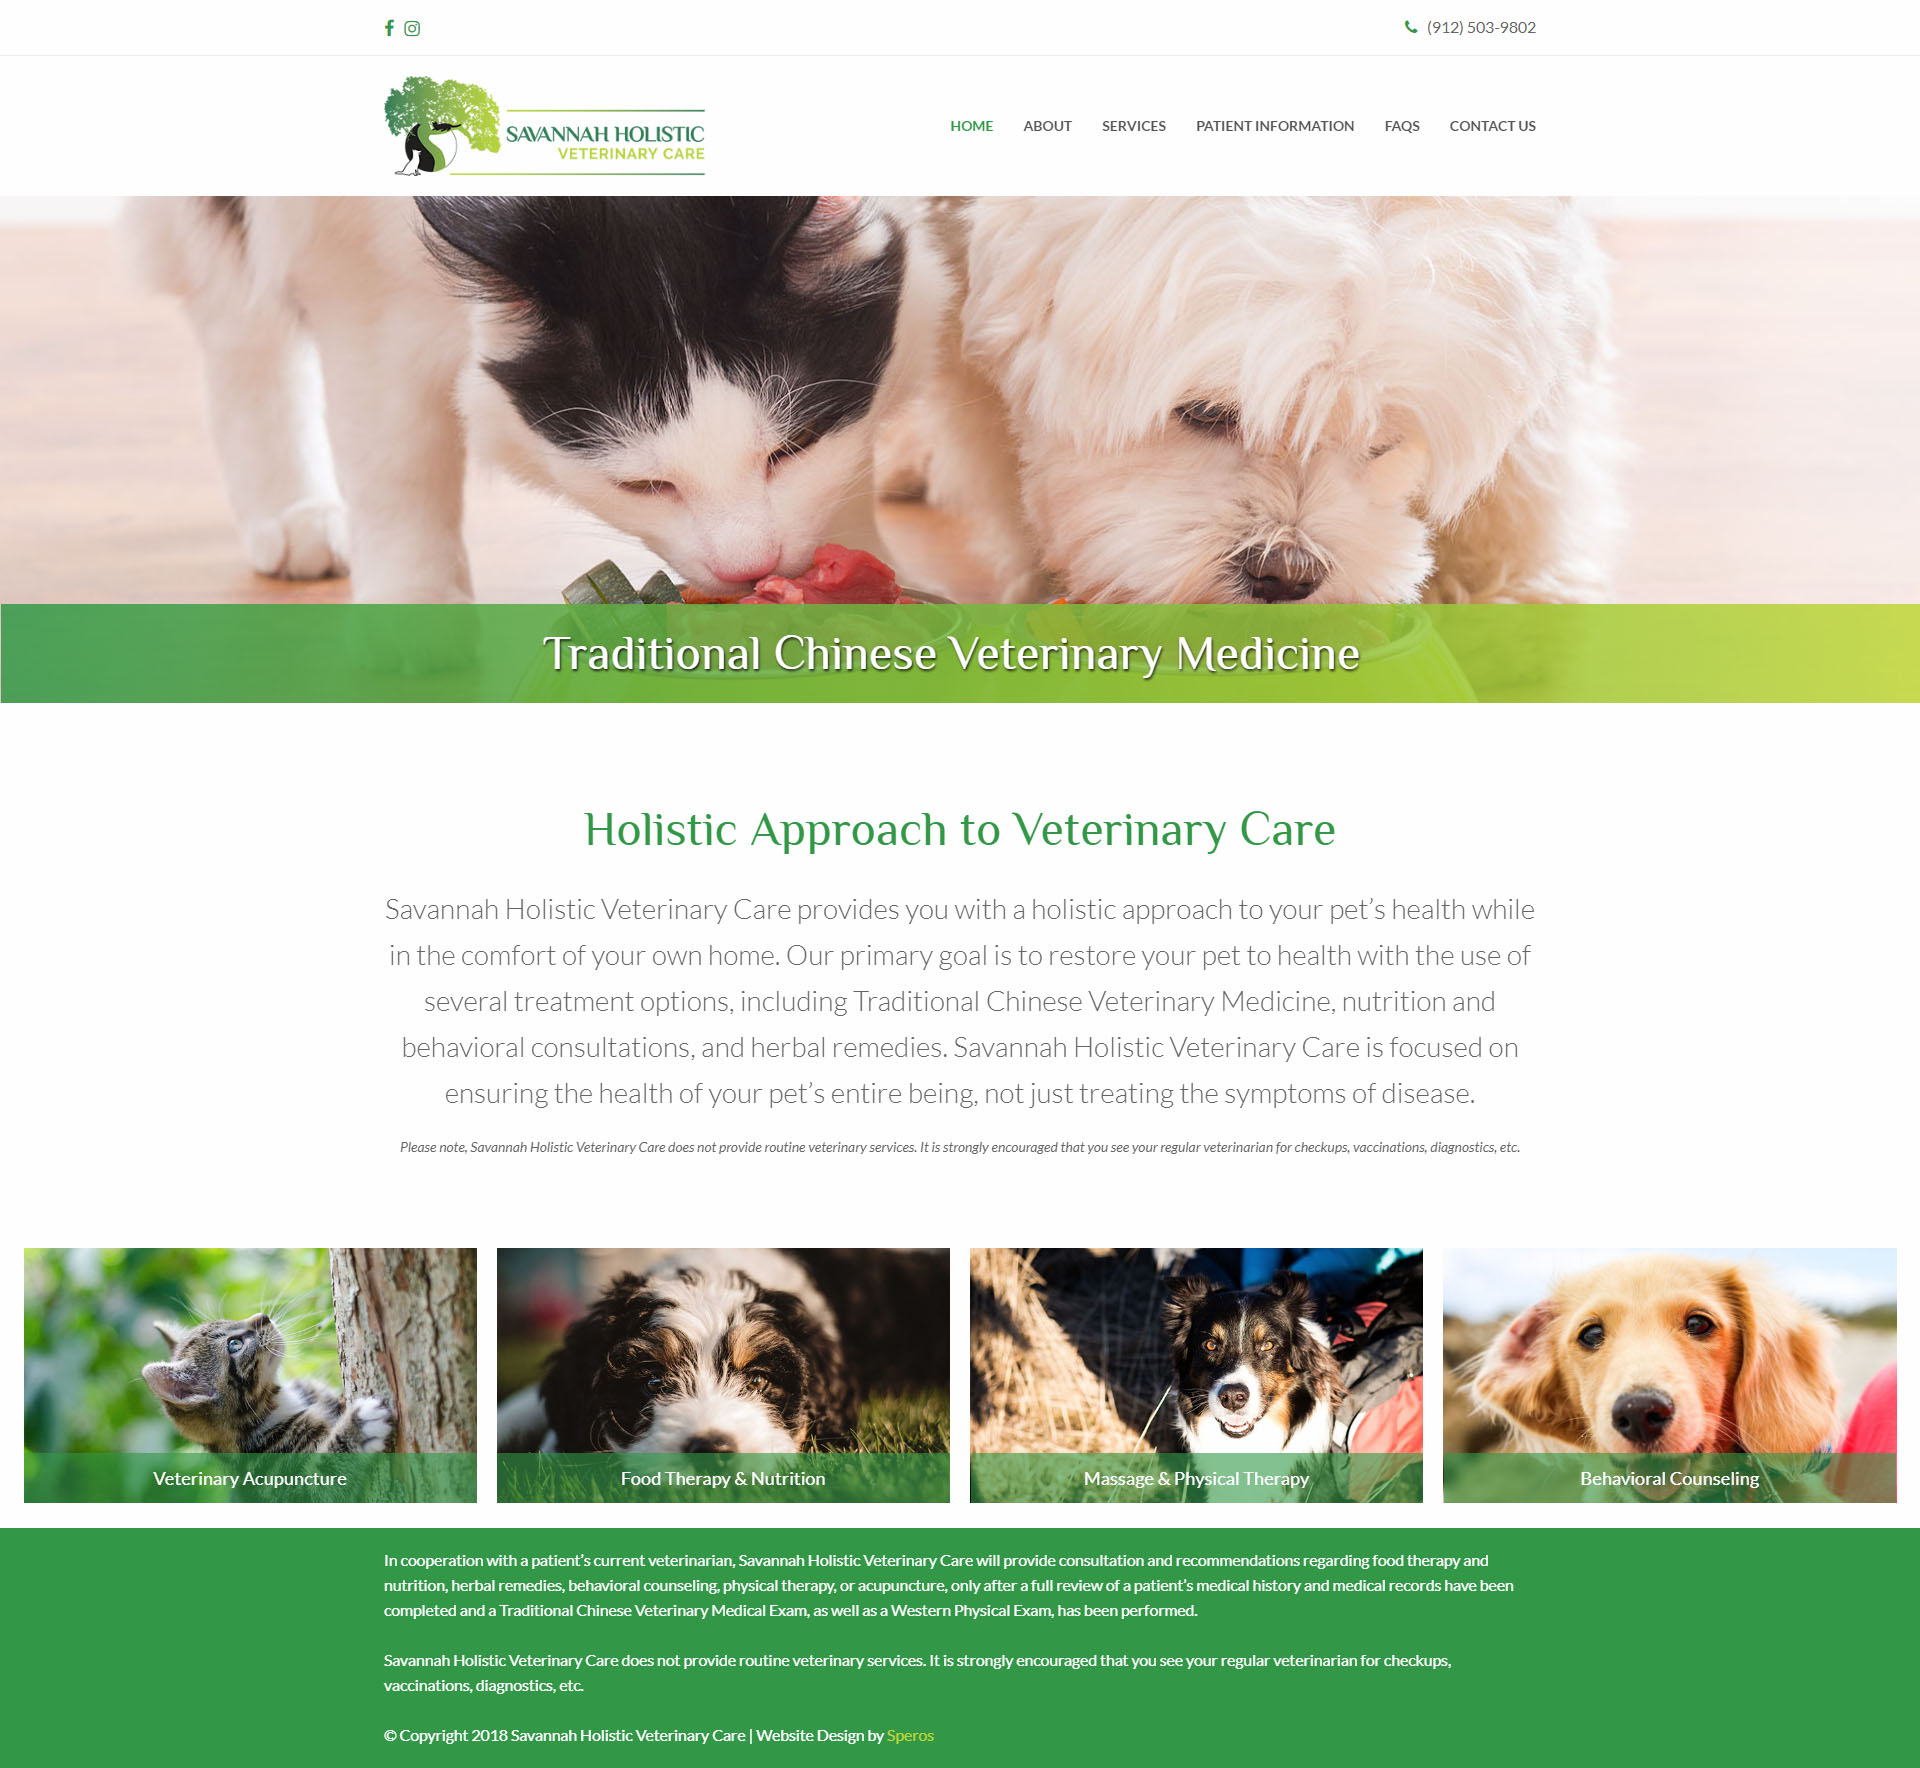 Savannah Holistic Veterinary Care Home Page - Website Design - Speros